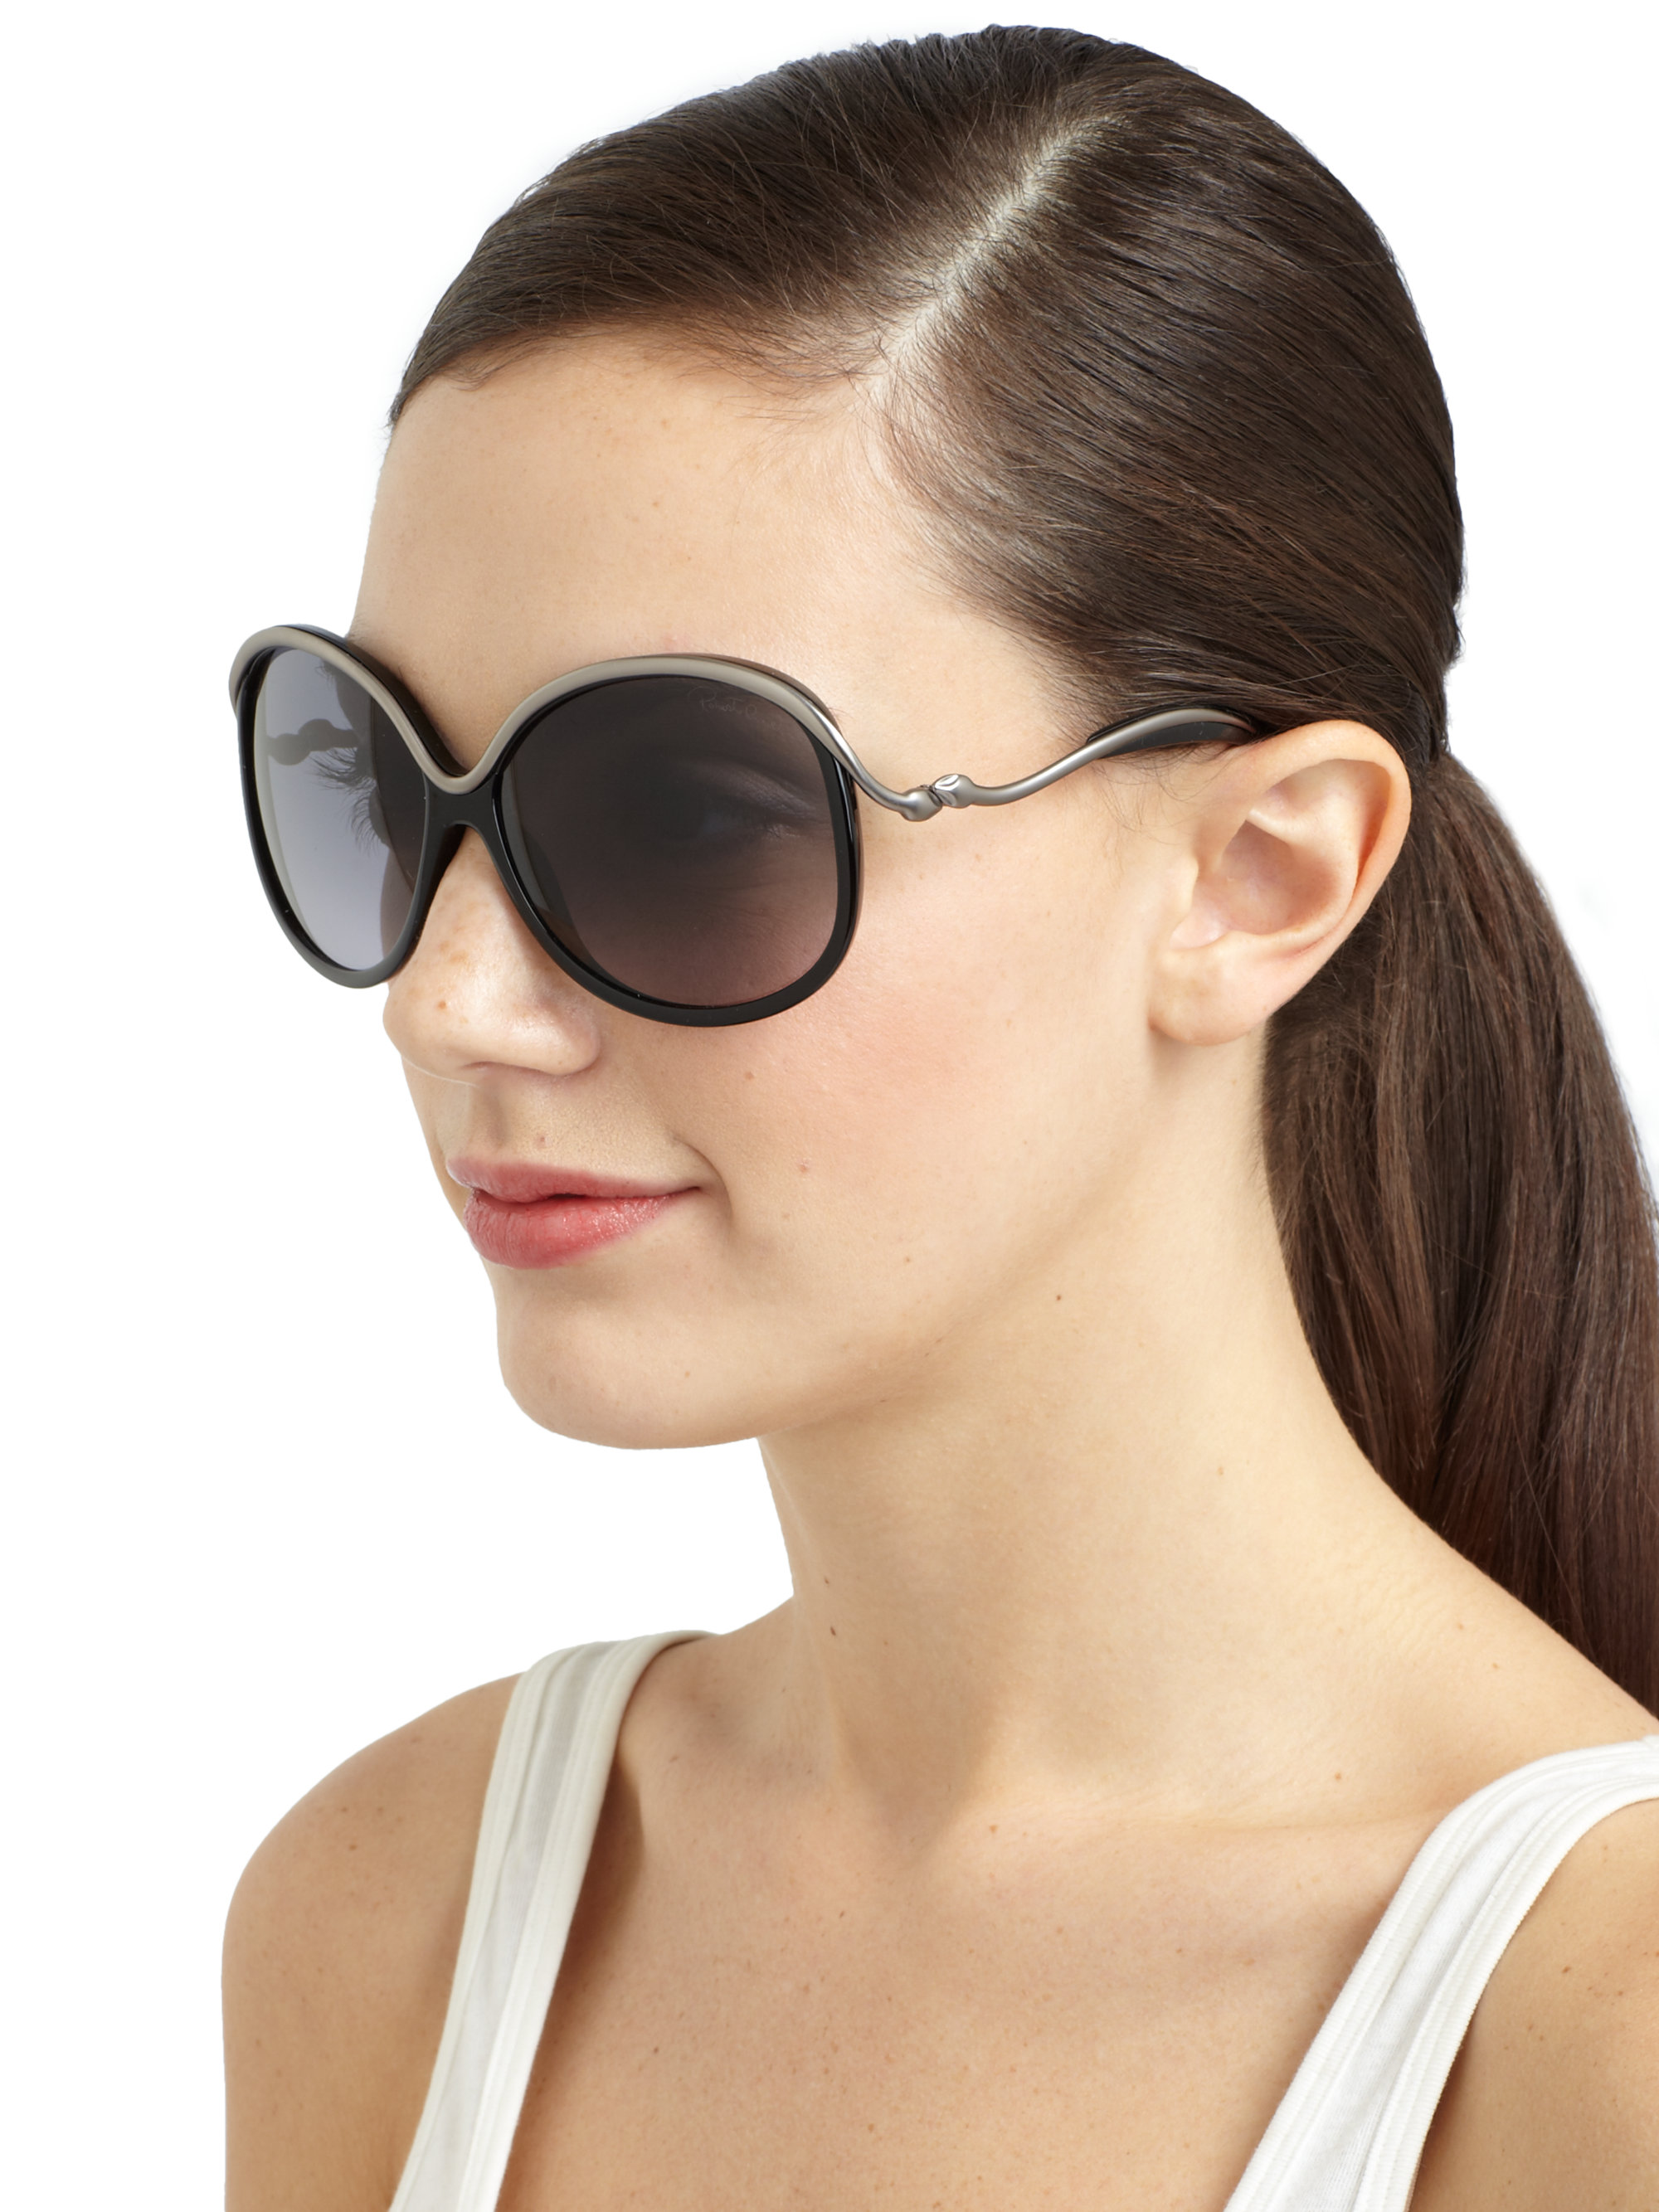 Roberto Cavalli oversize sunglasses Cheap Extremely Cheap Nicekicks Collections For Sale Buy Cheap Best Looking For mM9HPpE